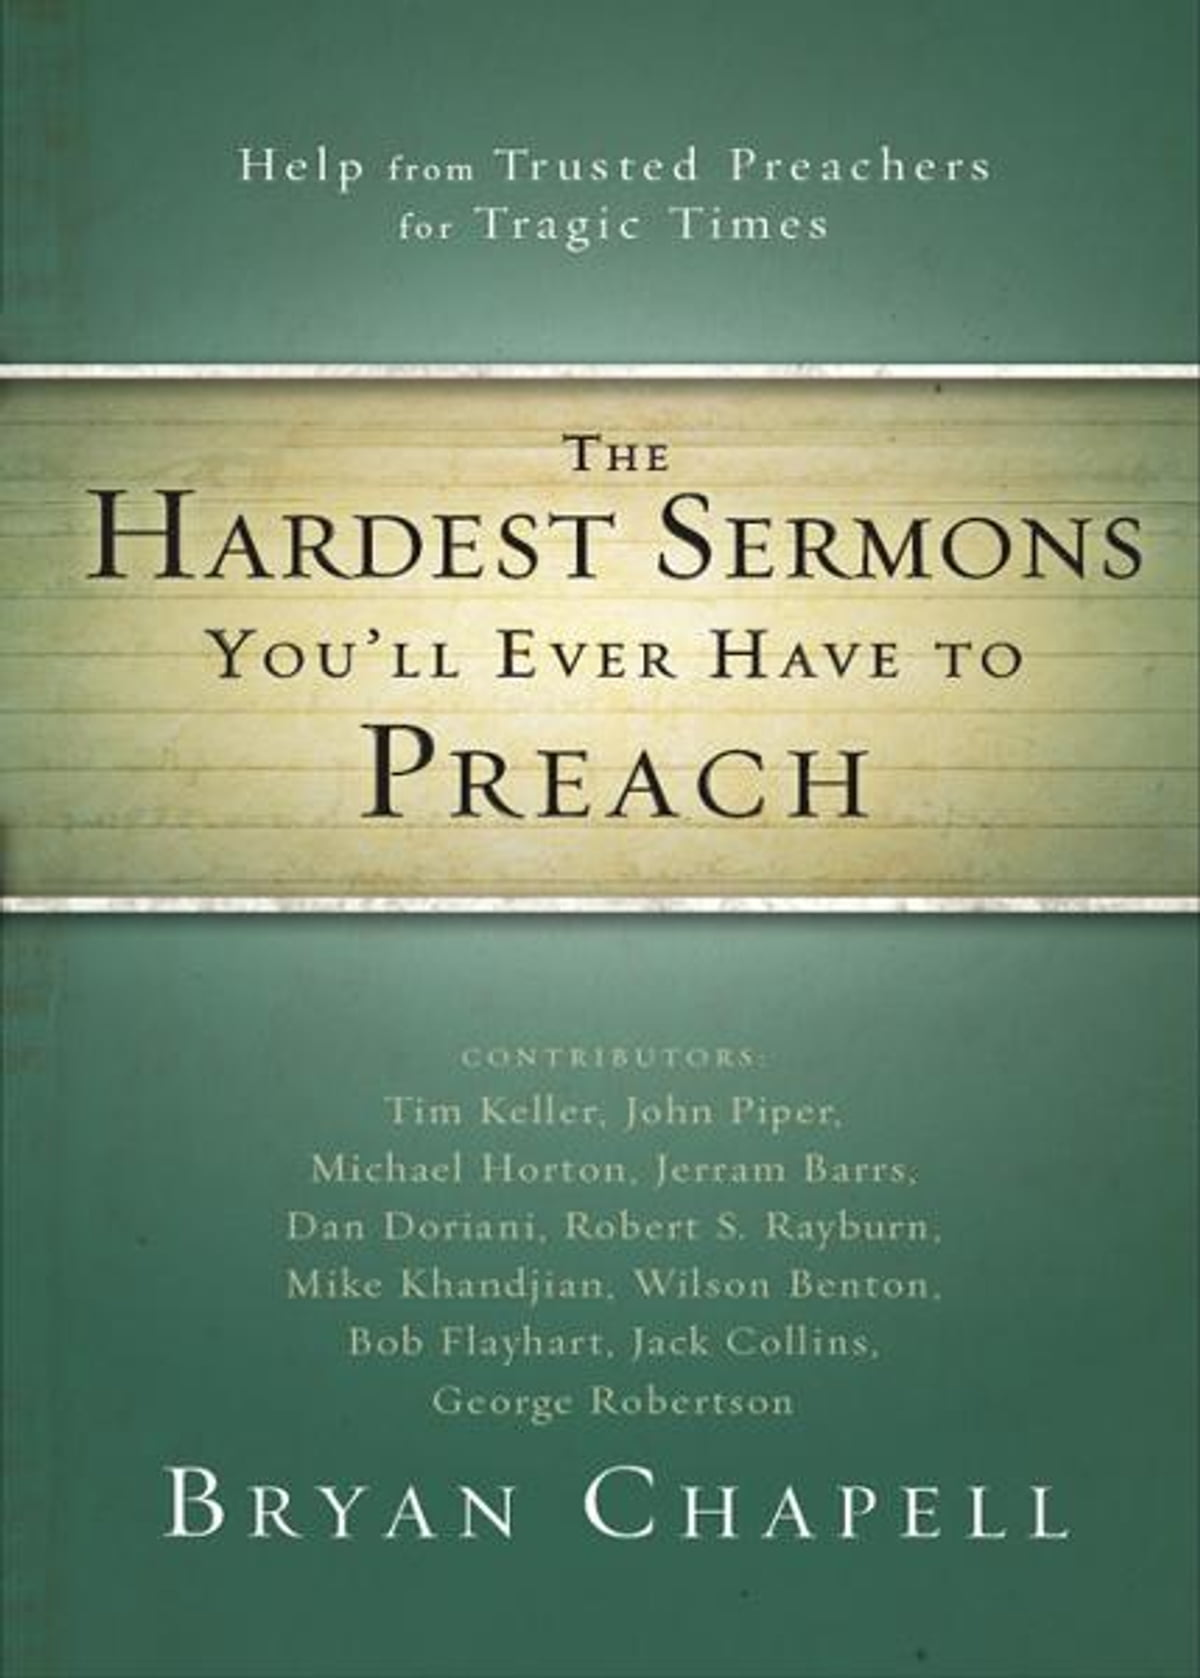 The Hardest Sermons You'll Ever Have to Preach eBook by Zondervan -  9780310416746 | Rakuten Kobo